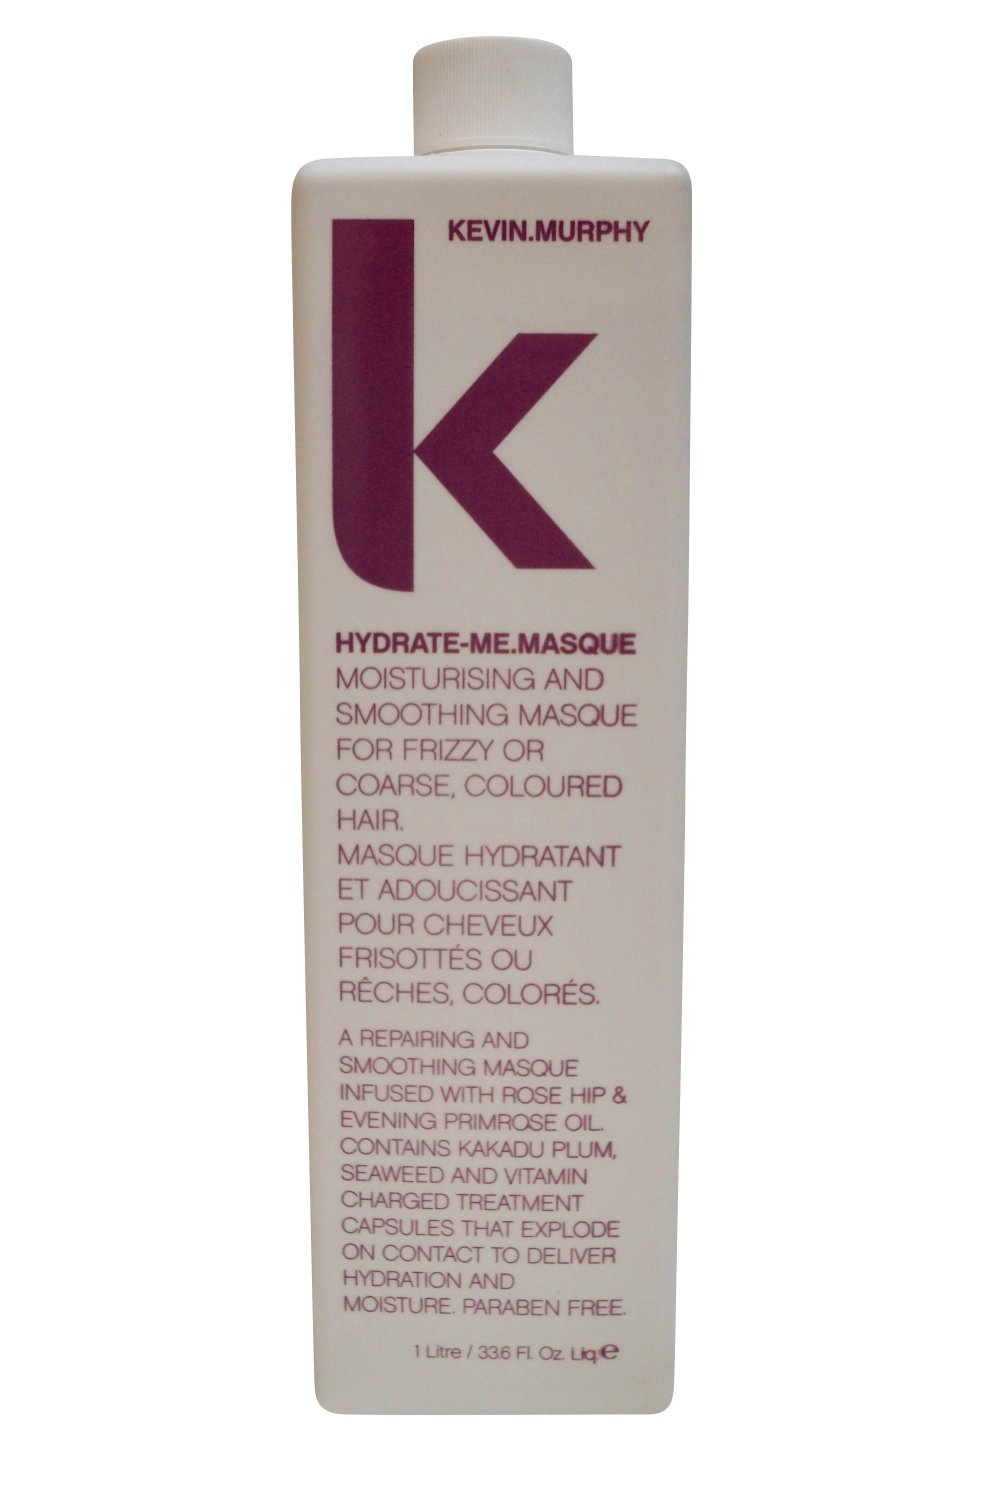 Kevin Murphy Hydrate Me Masque, 33.6 oz.